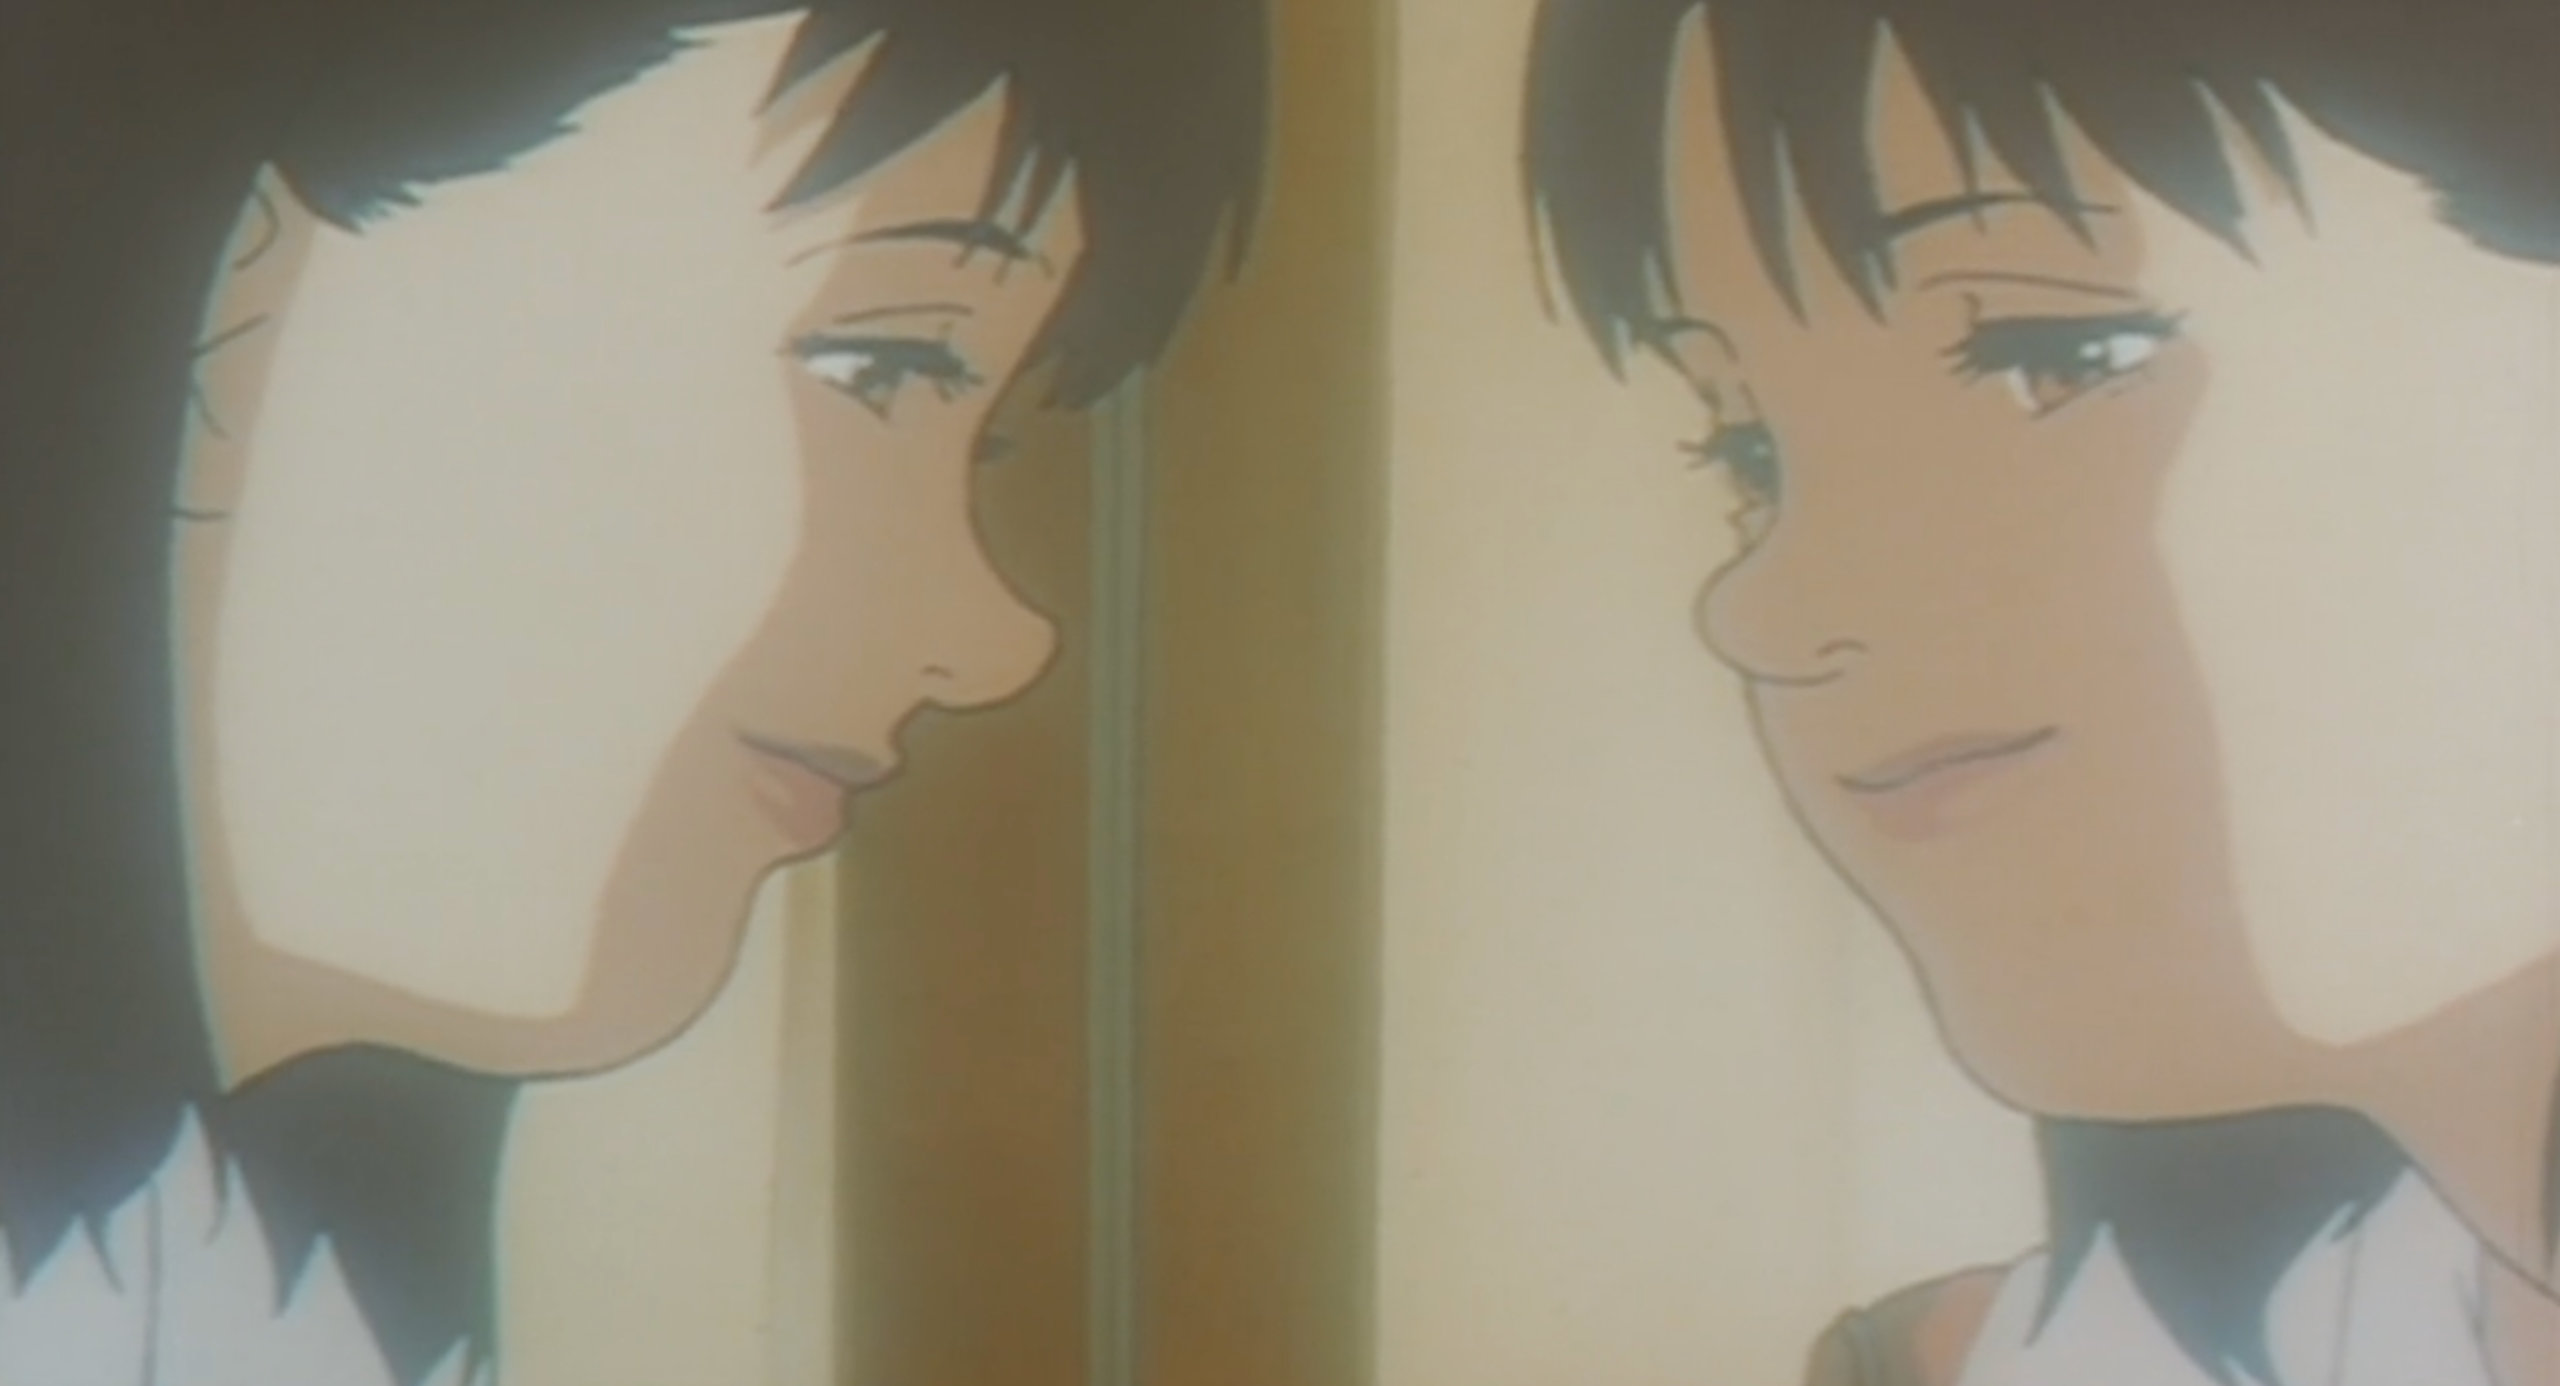 Mima reveals she has a split personality in Perfect Blue